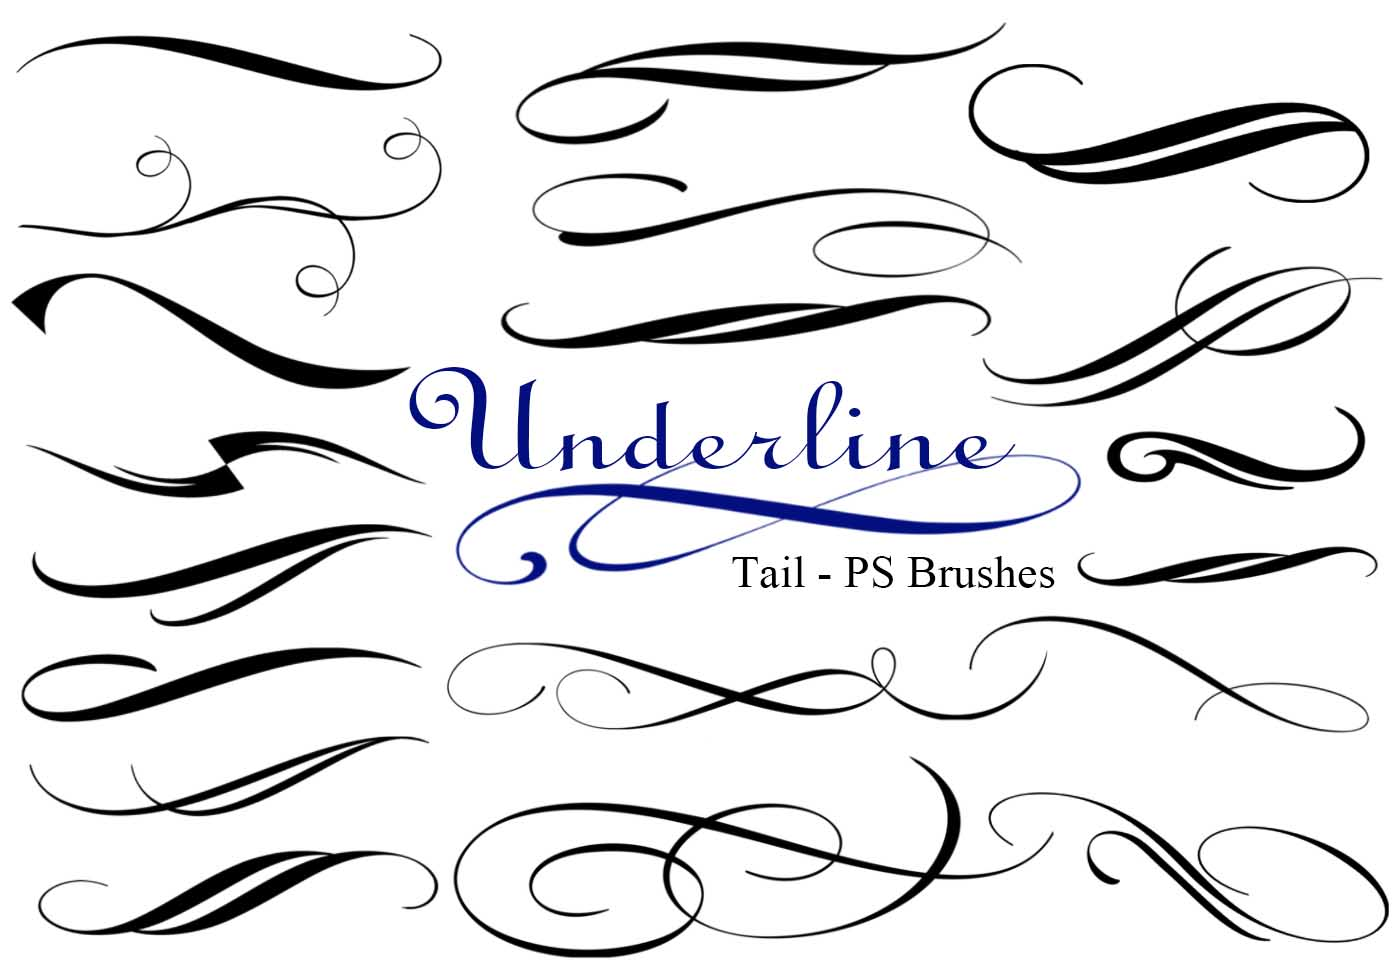 20 underline tail ps brushes abr vol 3